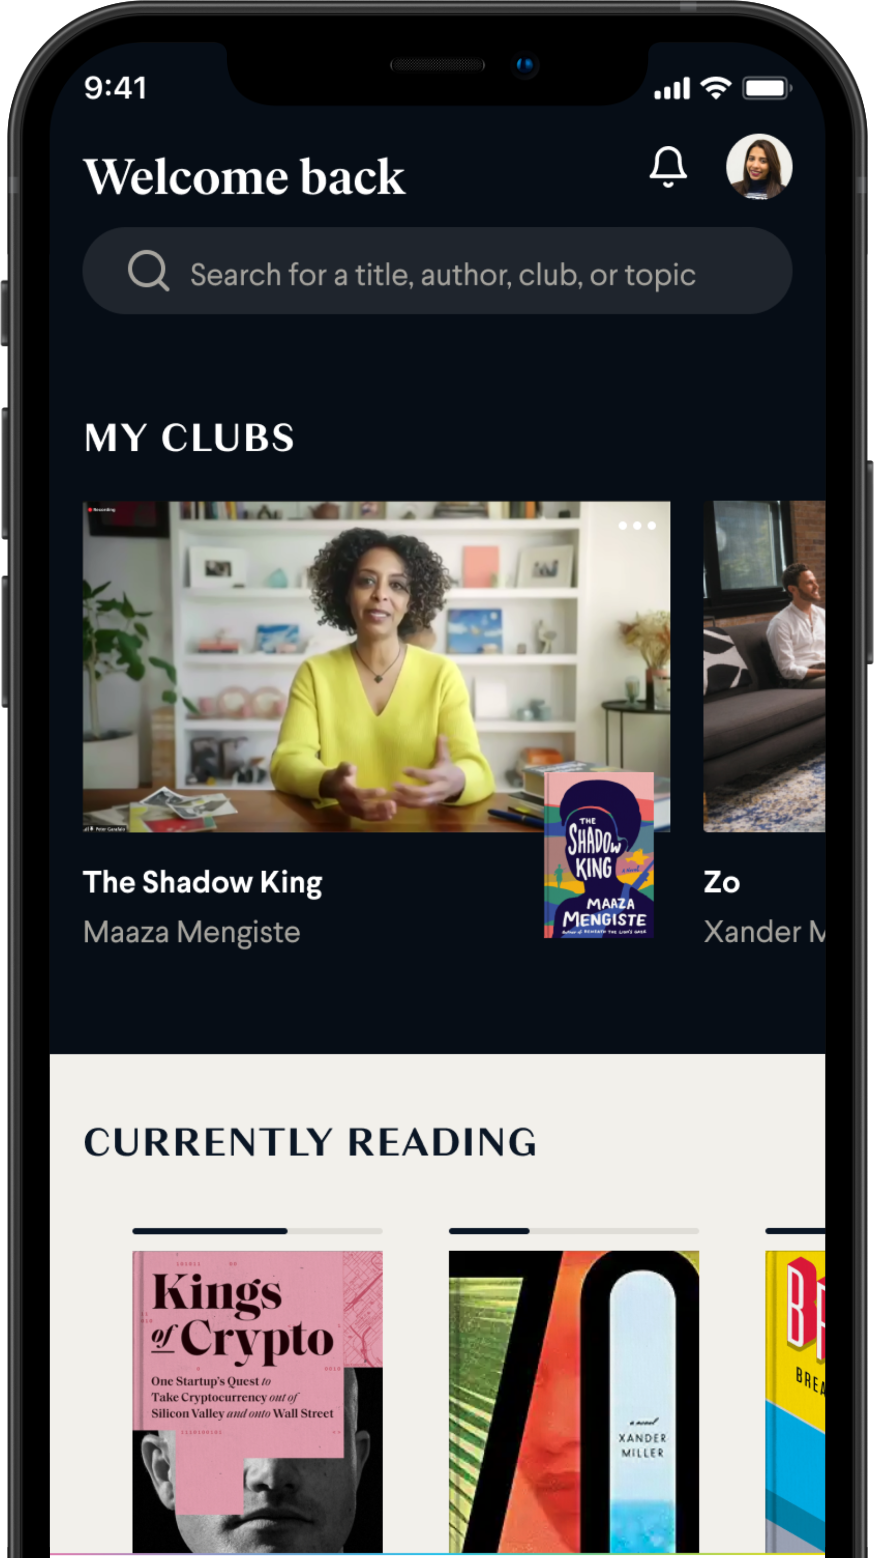 Homepage of BookClub mobile app. Features images of author Maaza Mengiste as well as the books Kings of Crypto and Zo.